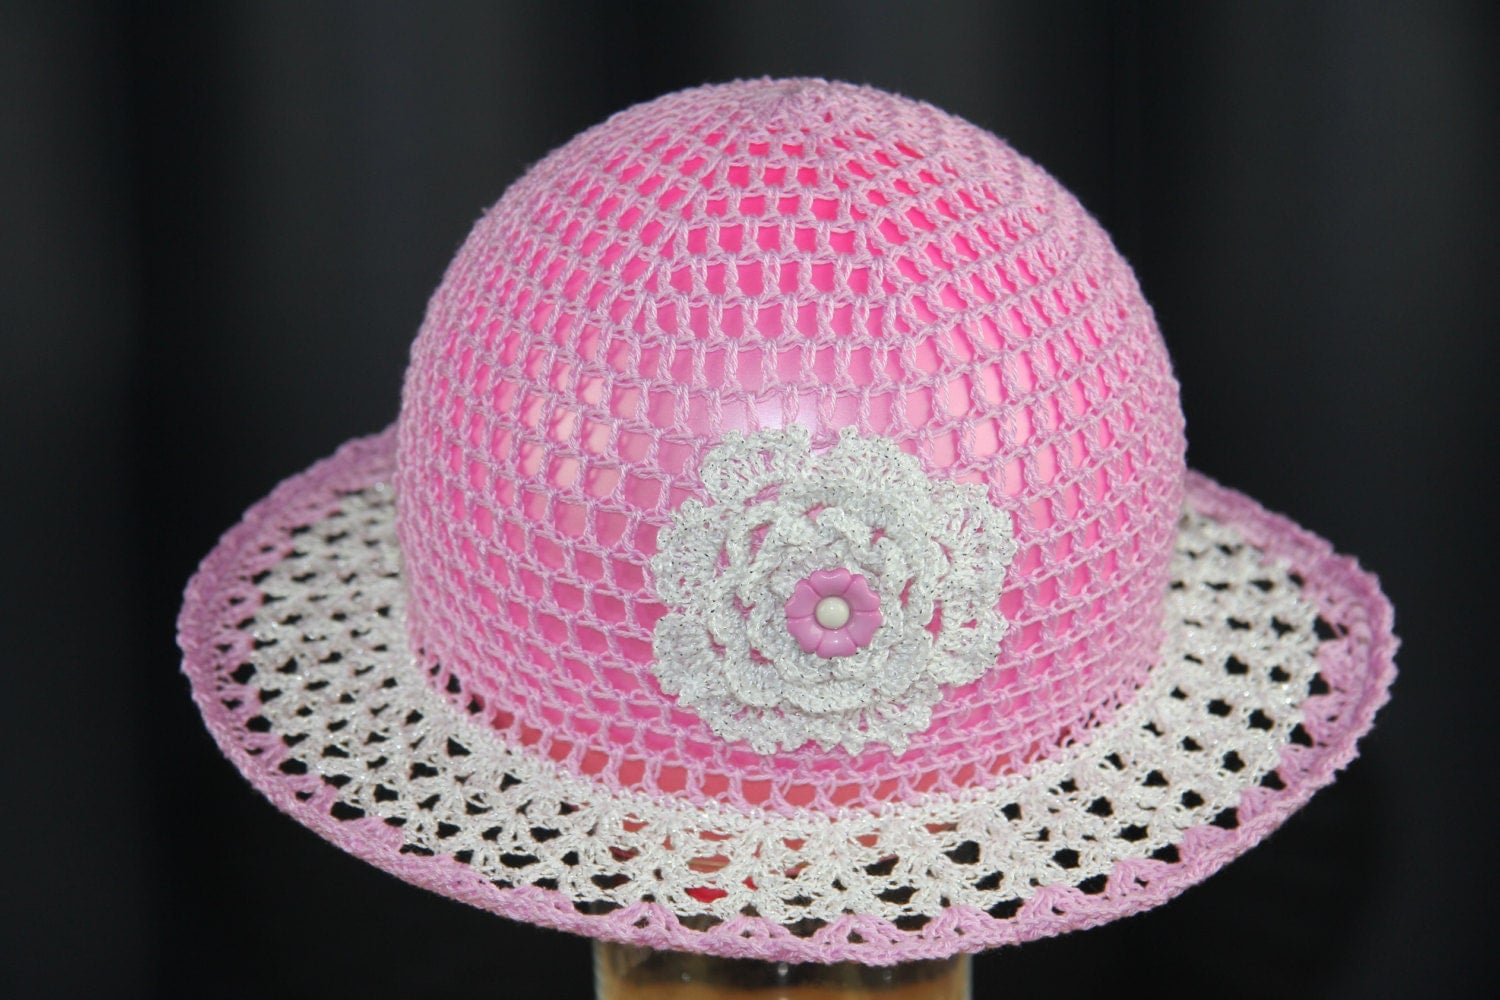 Crochet hat for kids Sun hats for babies with flower Handmade